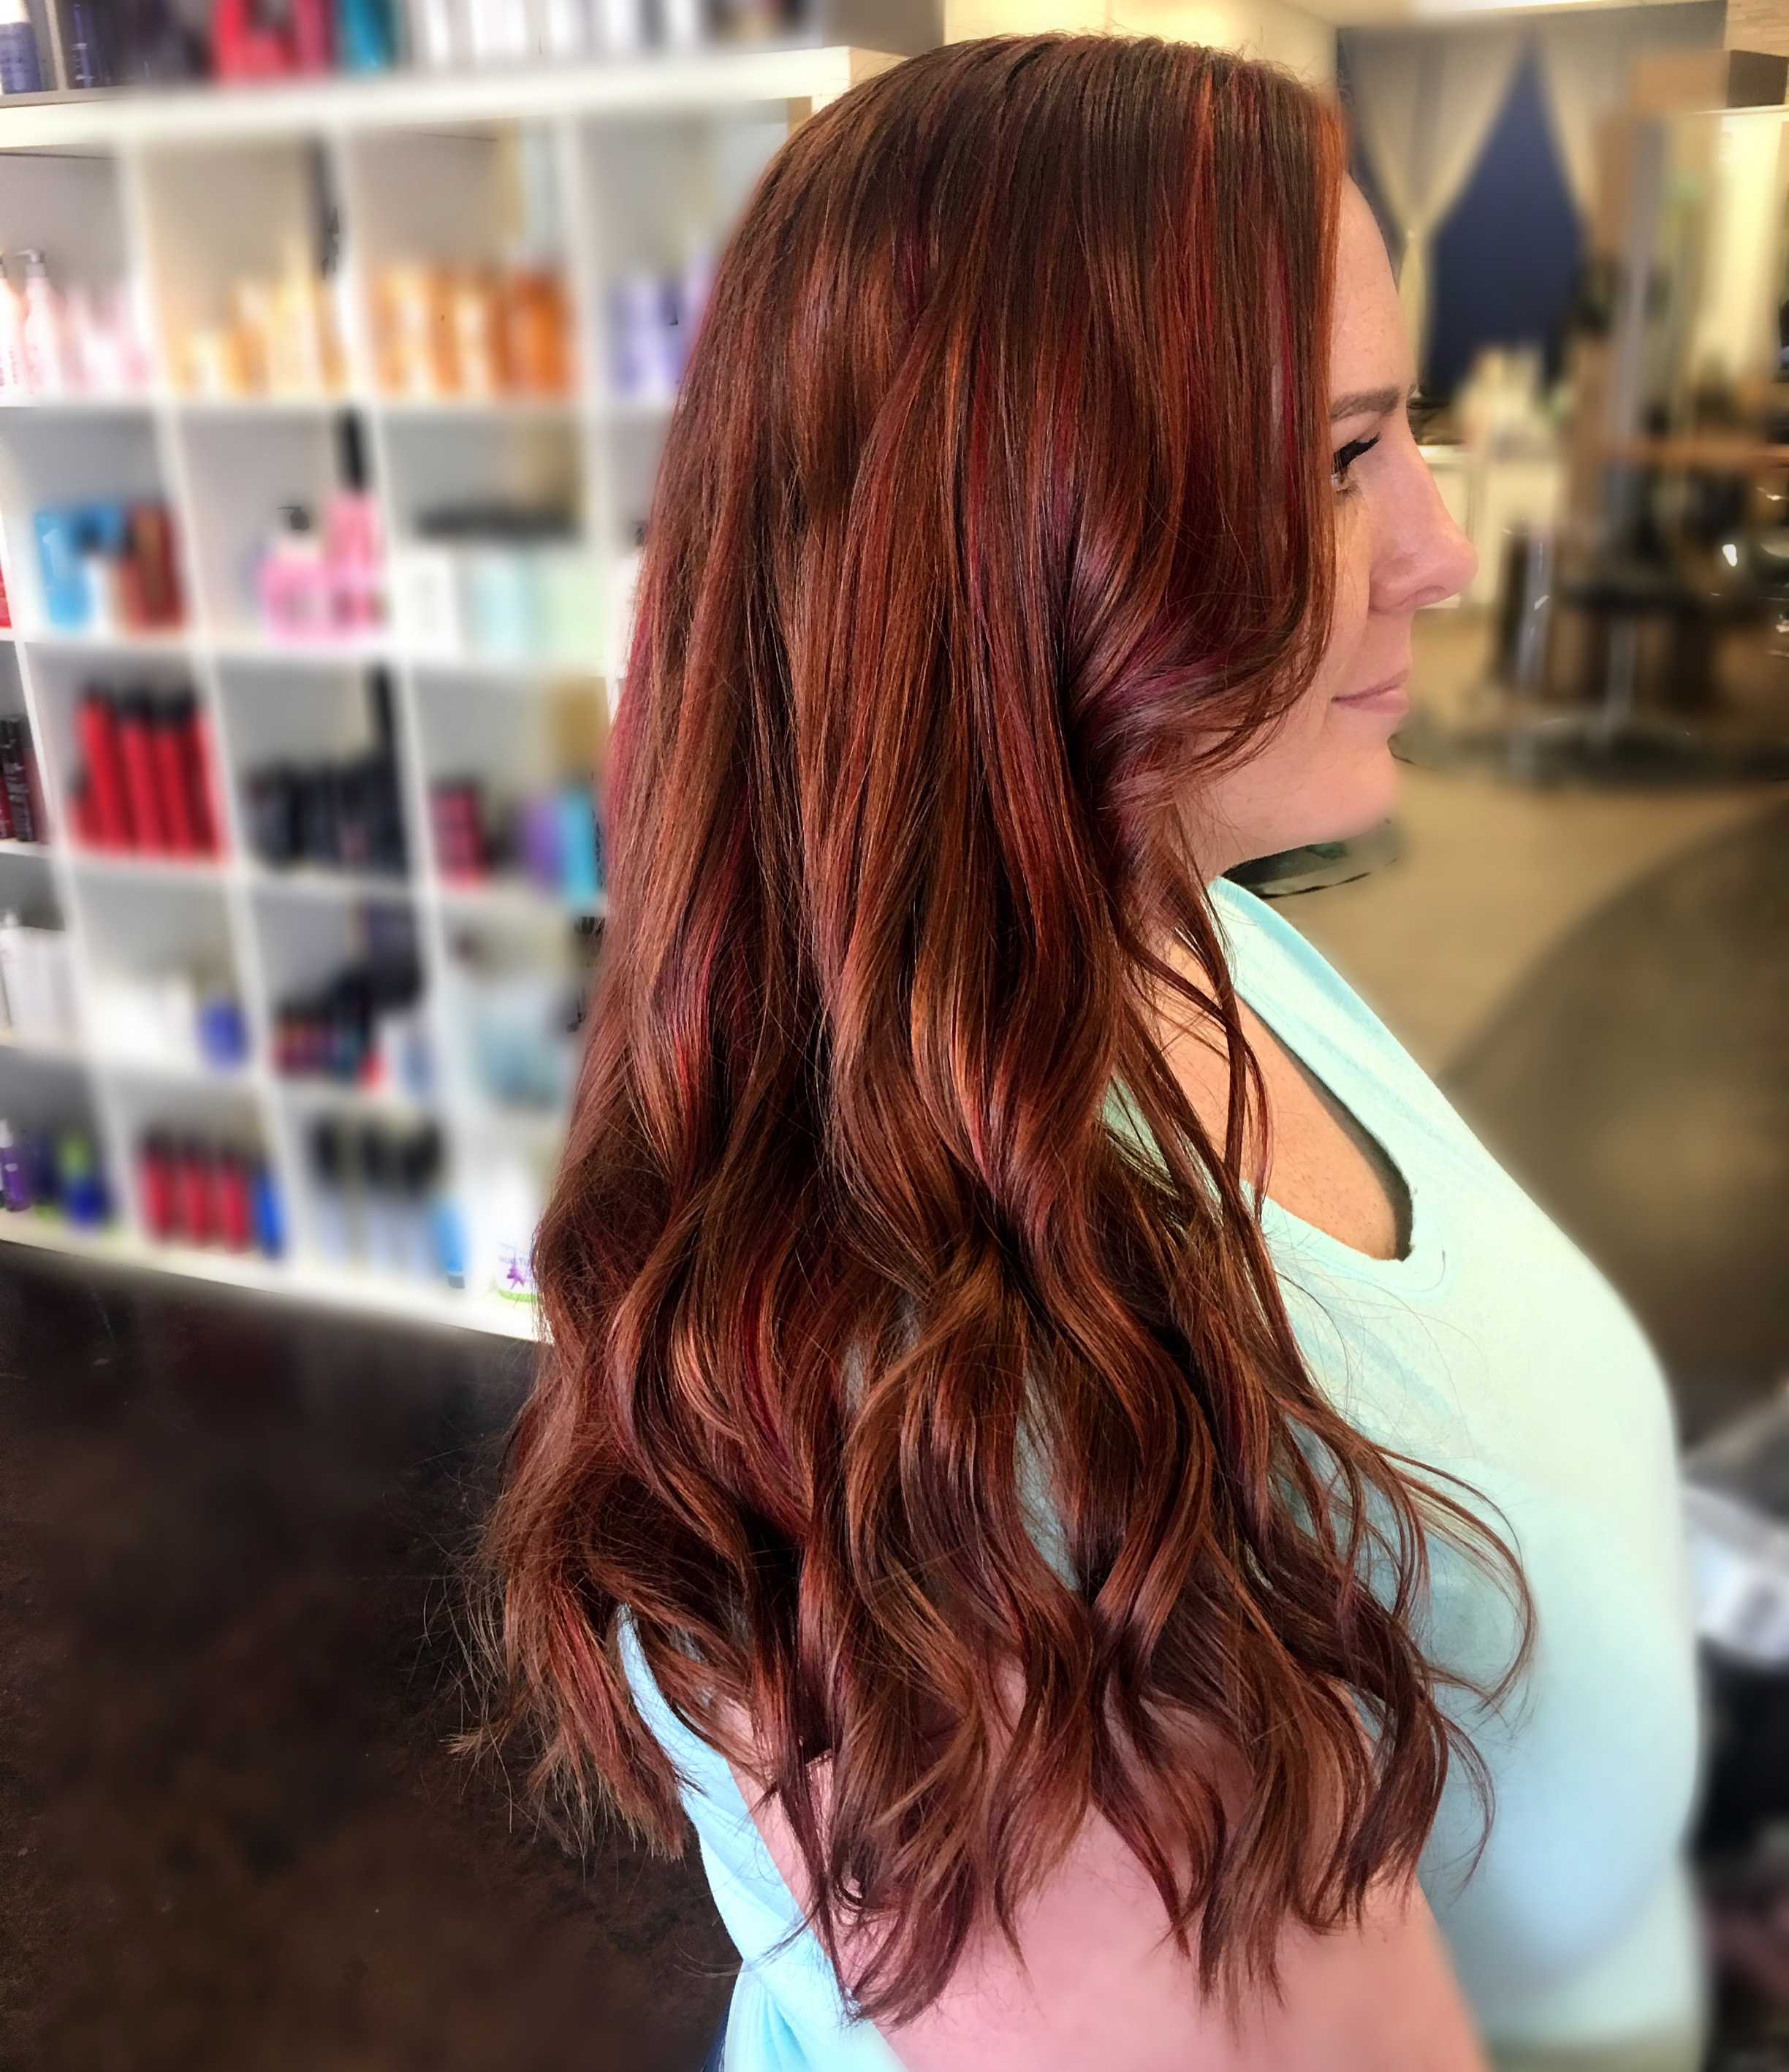 Burgundy, copper, and red hot swirls flowing perfectly through these gorgeous locks. This is a classy way to add flare and spark to your look. Burgundy on Fire hair color by stylist Jessica Gossard of My Hair Therapy Sandy Luxury Hair Salon